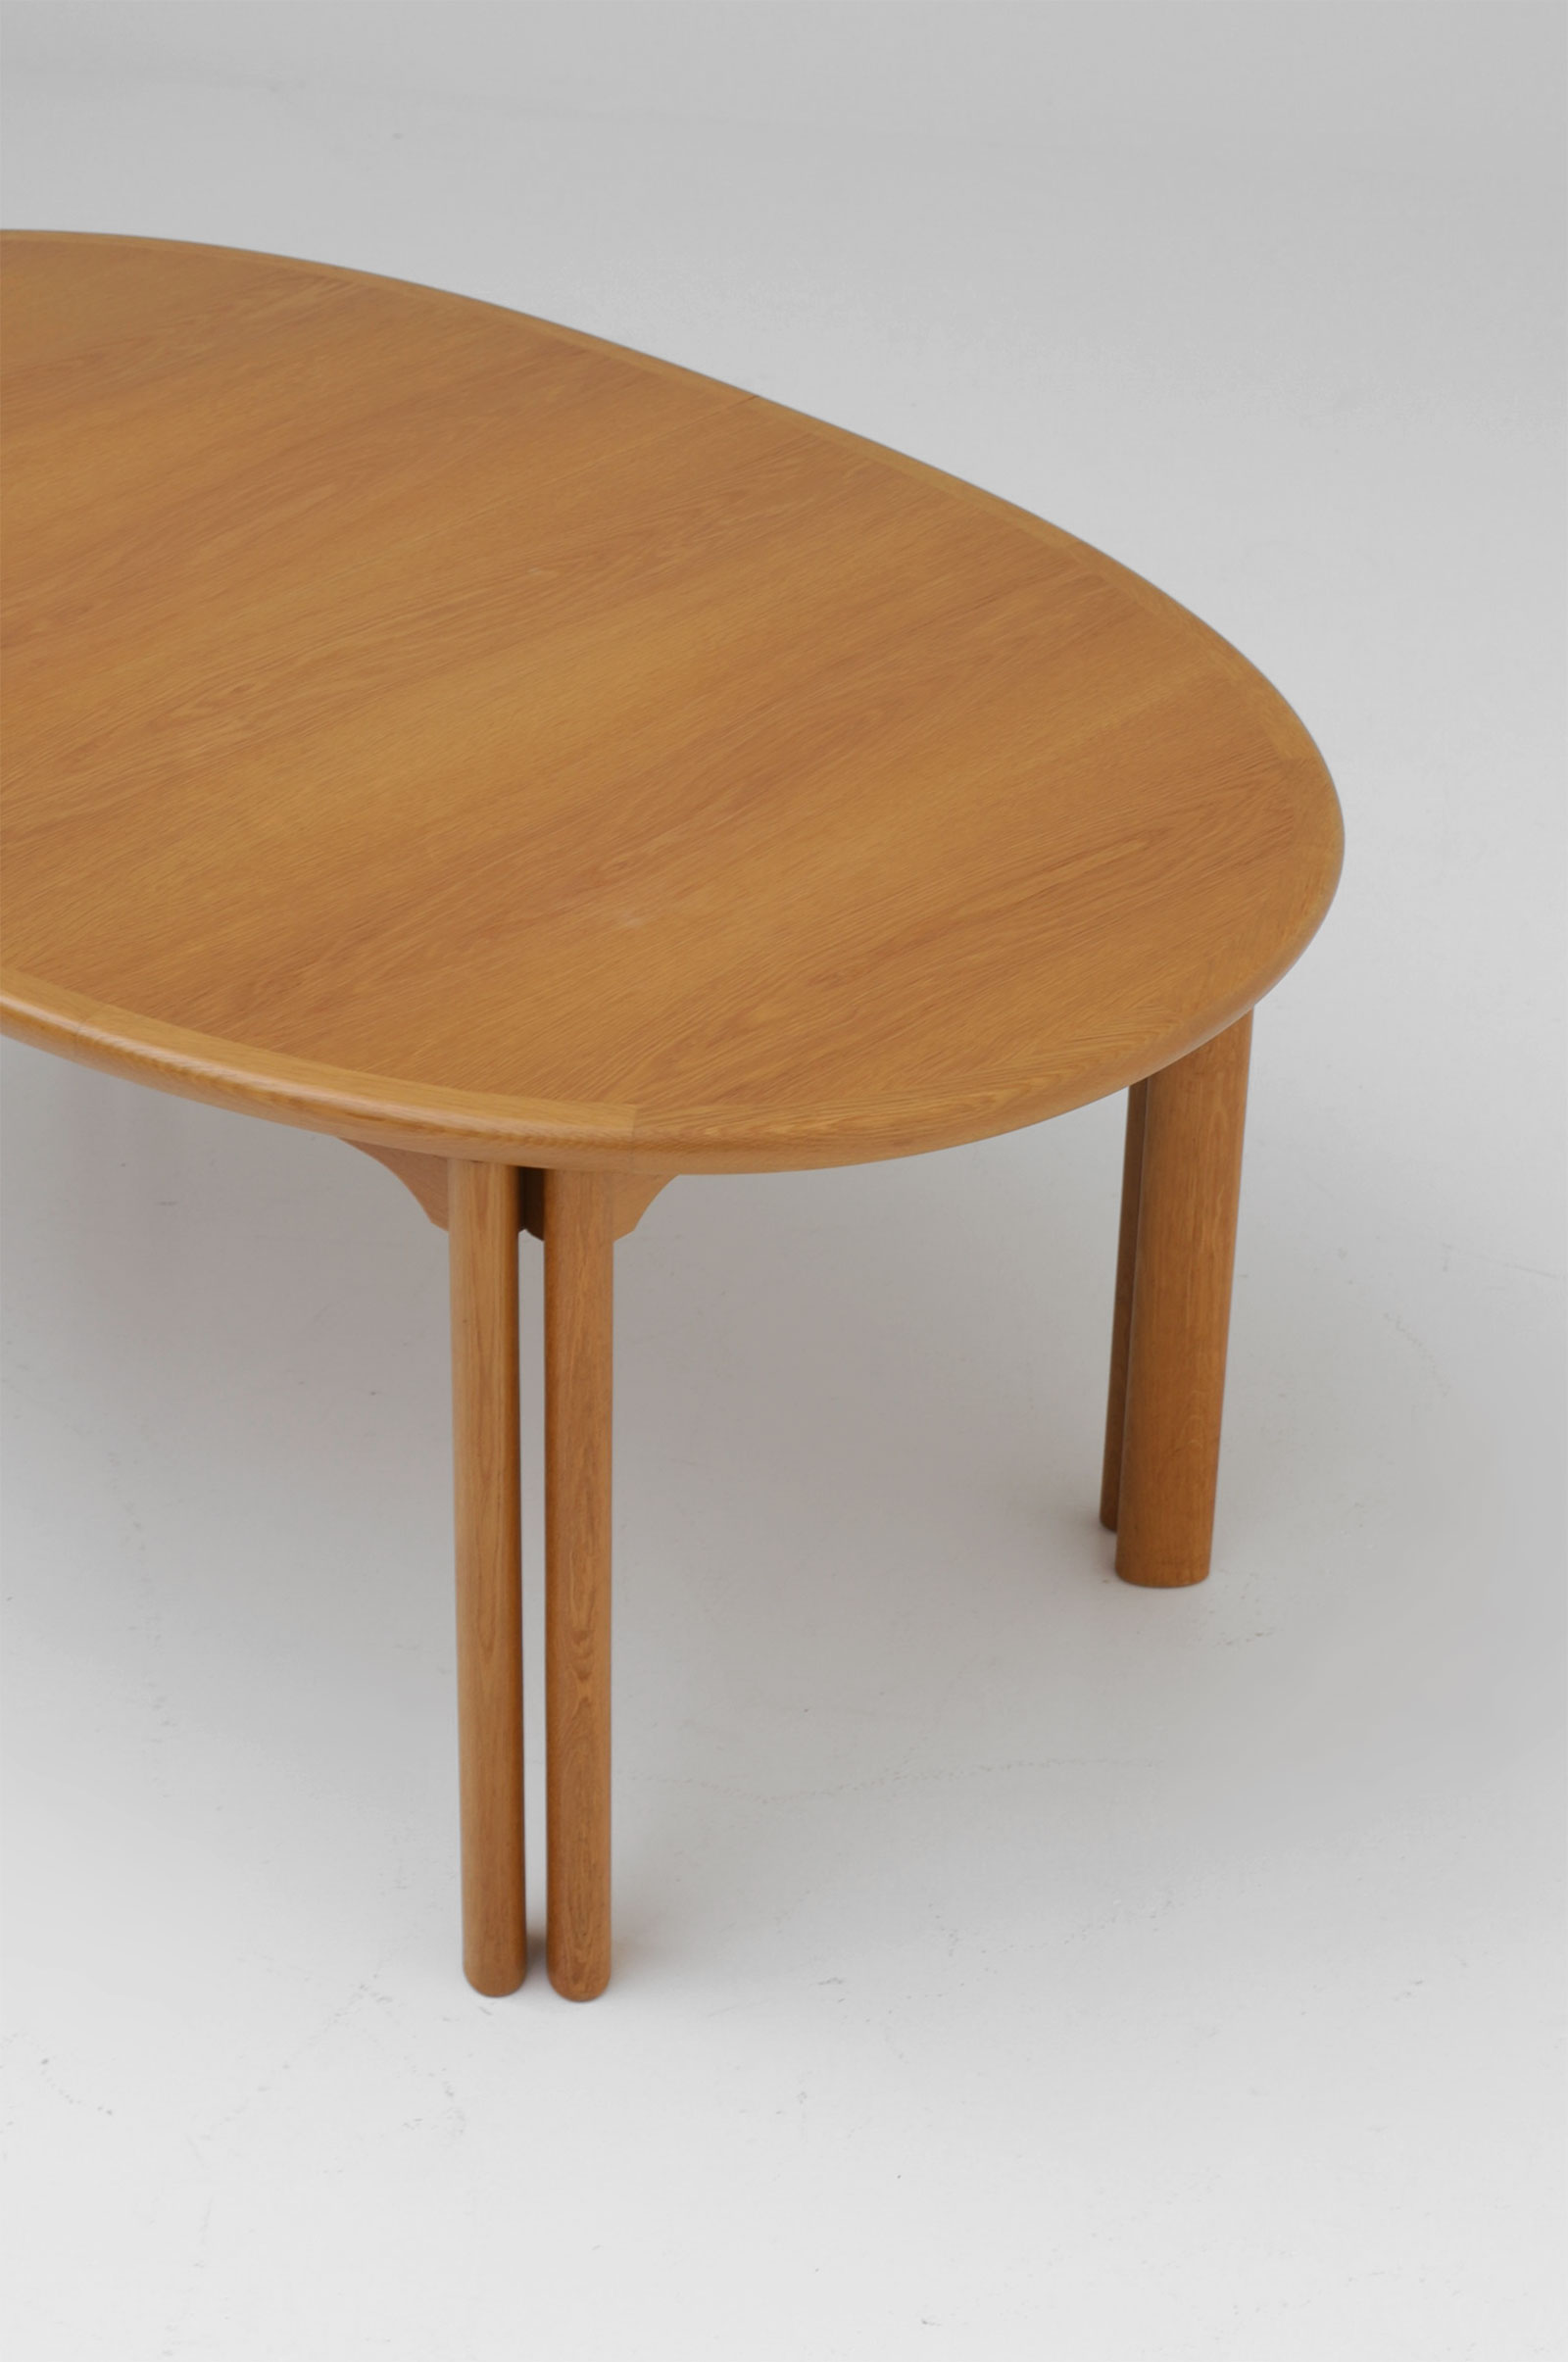 Oak Dining Table Van Den Berghe Pauversimage 2